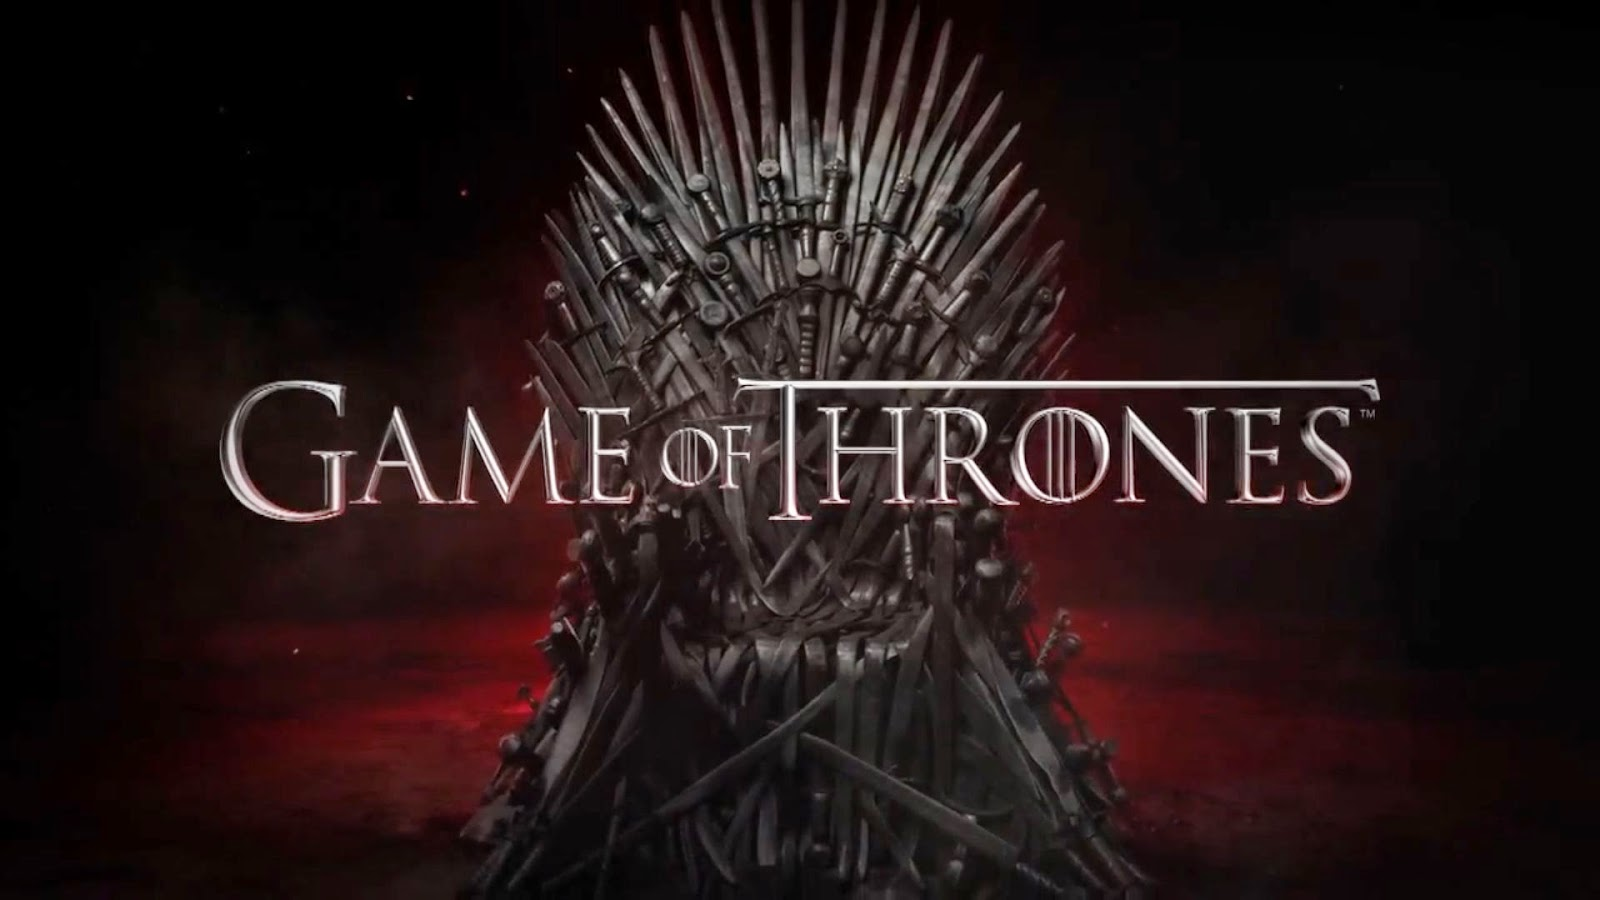 HBO renewed Game of Thrones for two more seasons